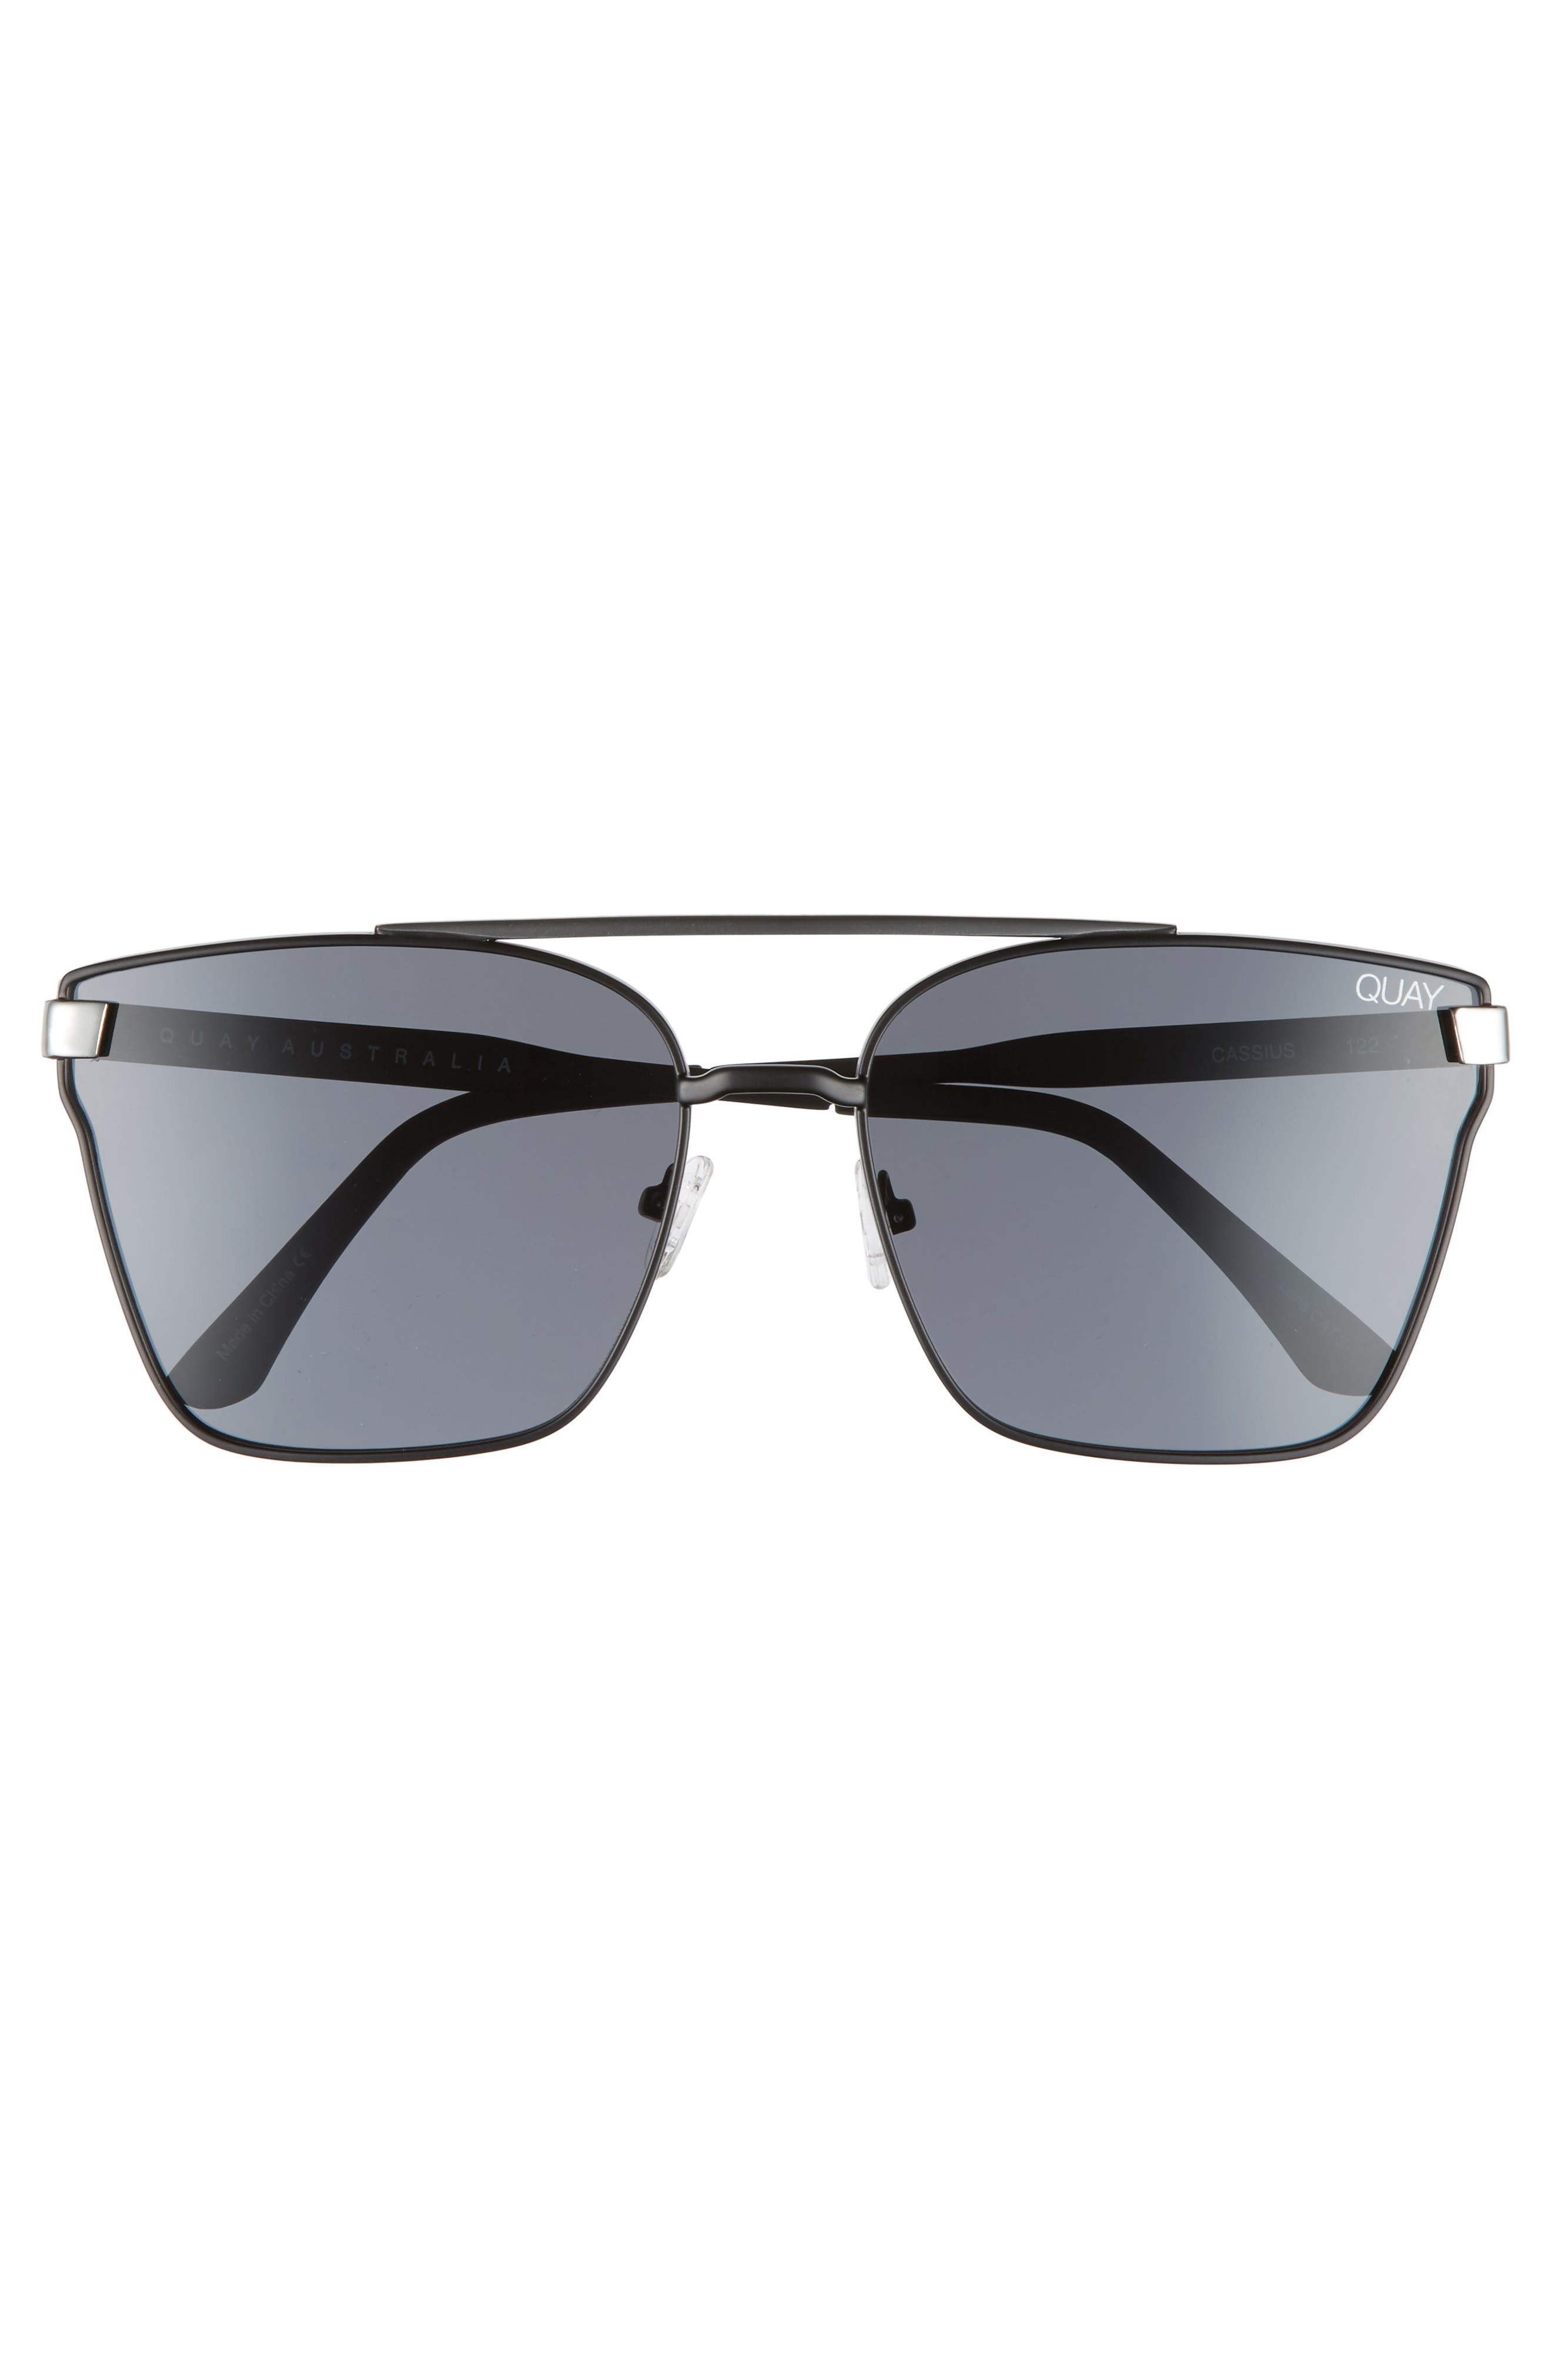 Cassius 59mm Navigator Sunglasses,                             Alternate thumbnail 2, color,                             Black/Smoke